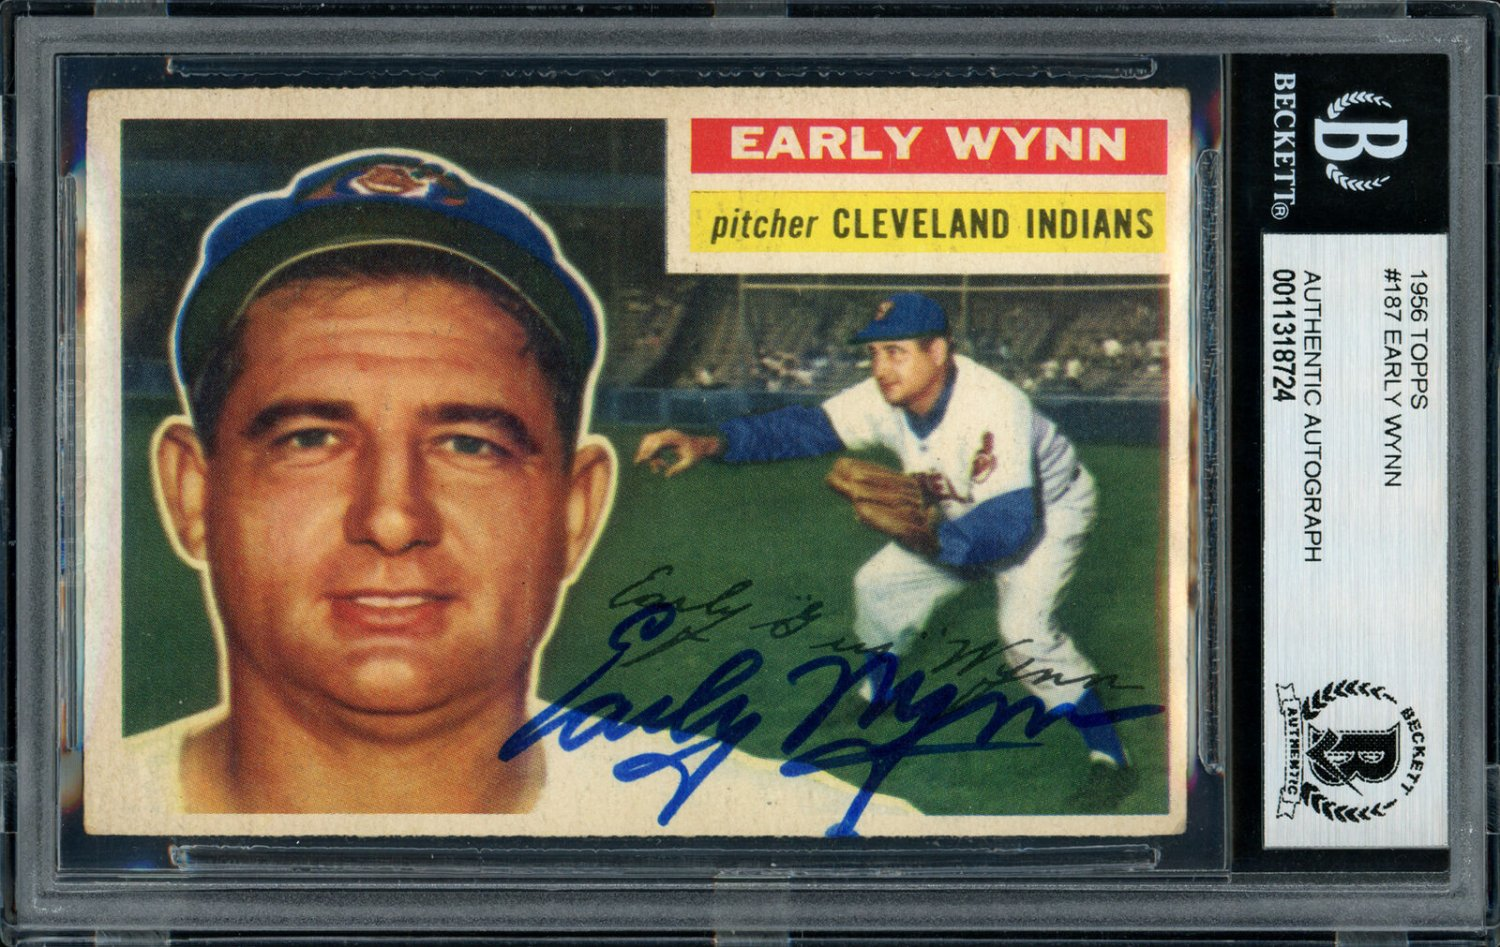 Early Wynn Cleveland Indians Autographed Signed 1956 Topps Card BECKETT